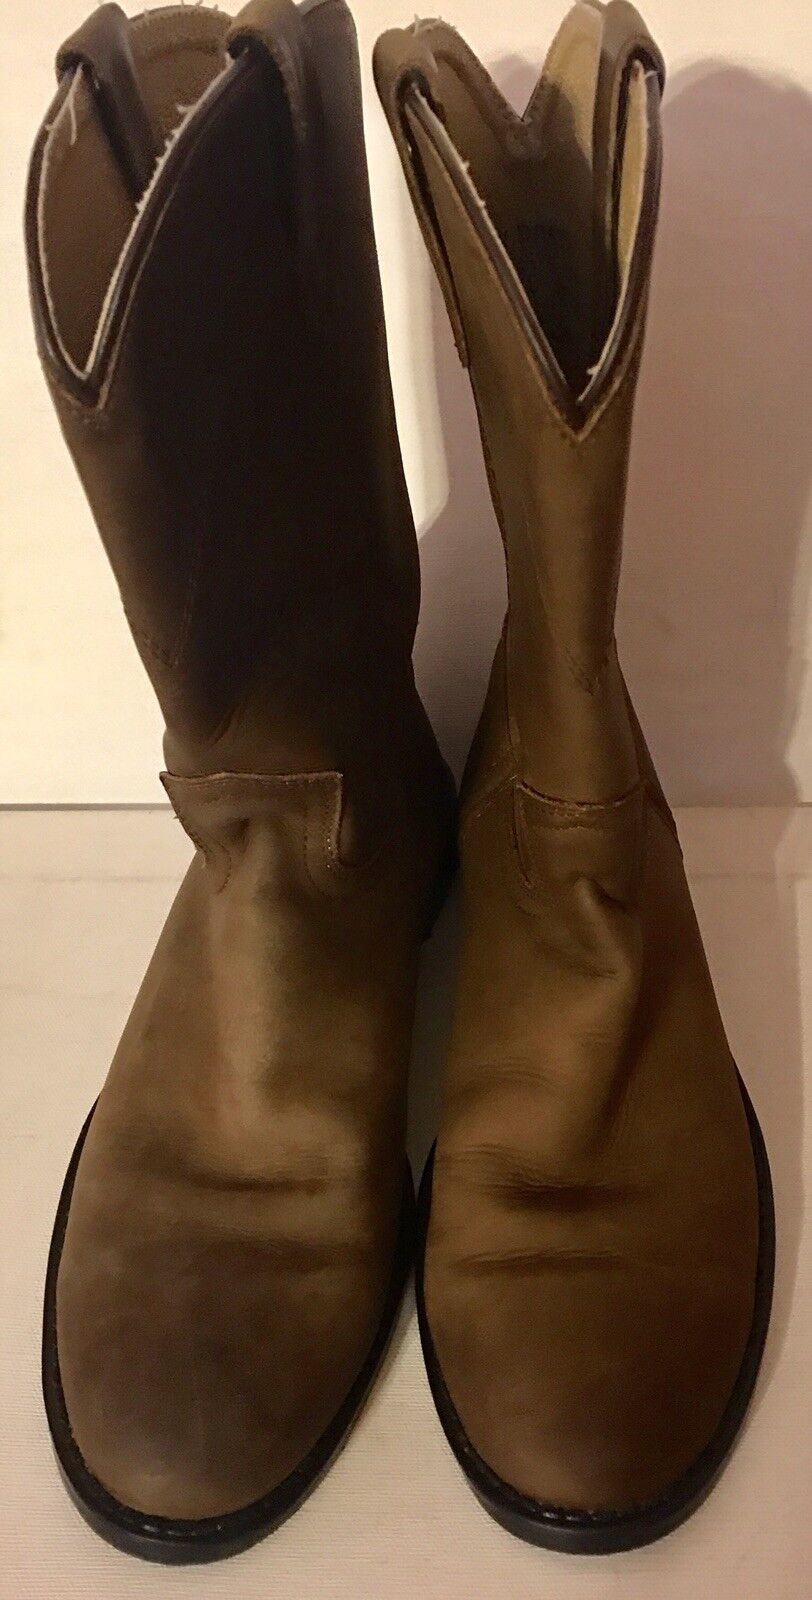 WOMENS WESTERN STYLE COWBOY BOOTS BY DAN POST-SIZE 5D, Pre-Owned